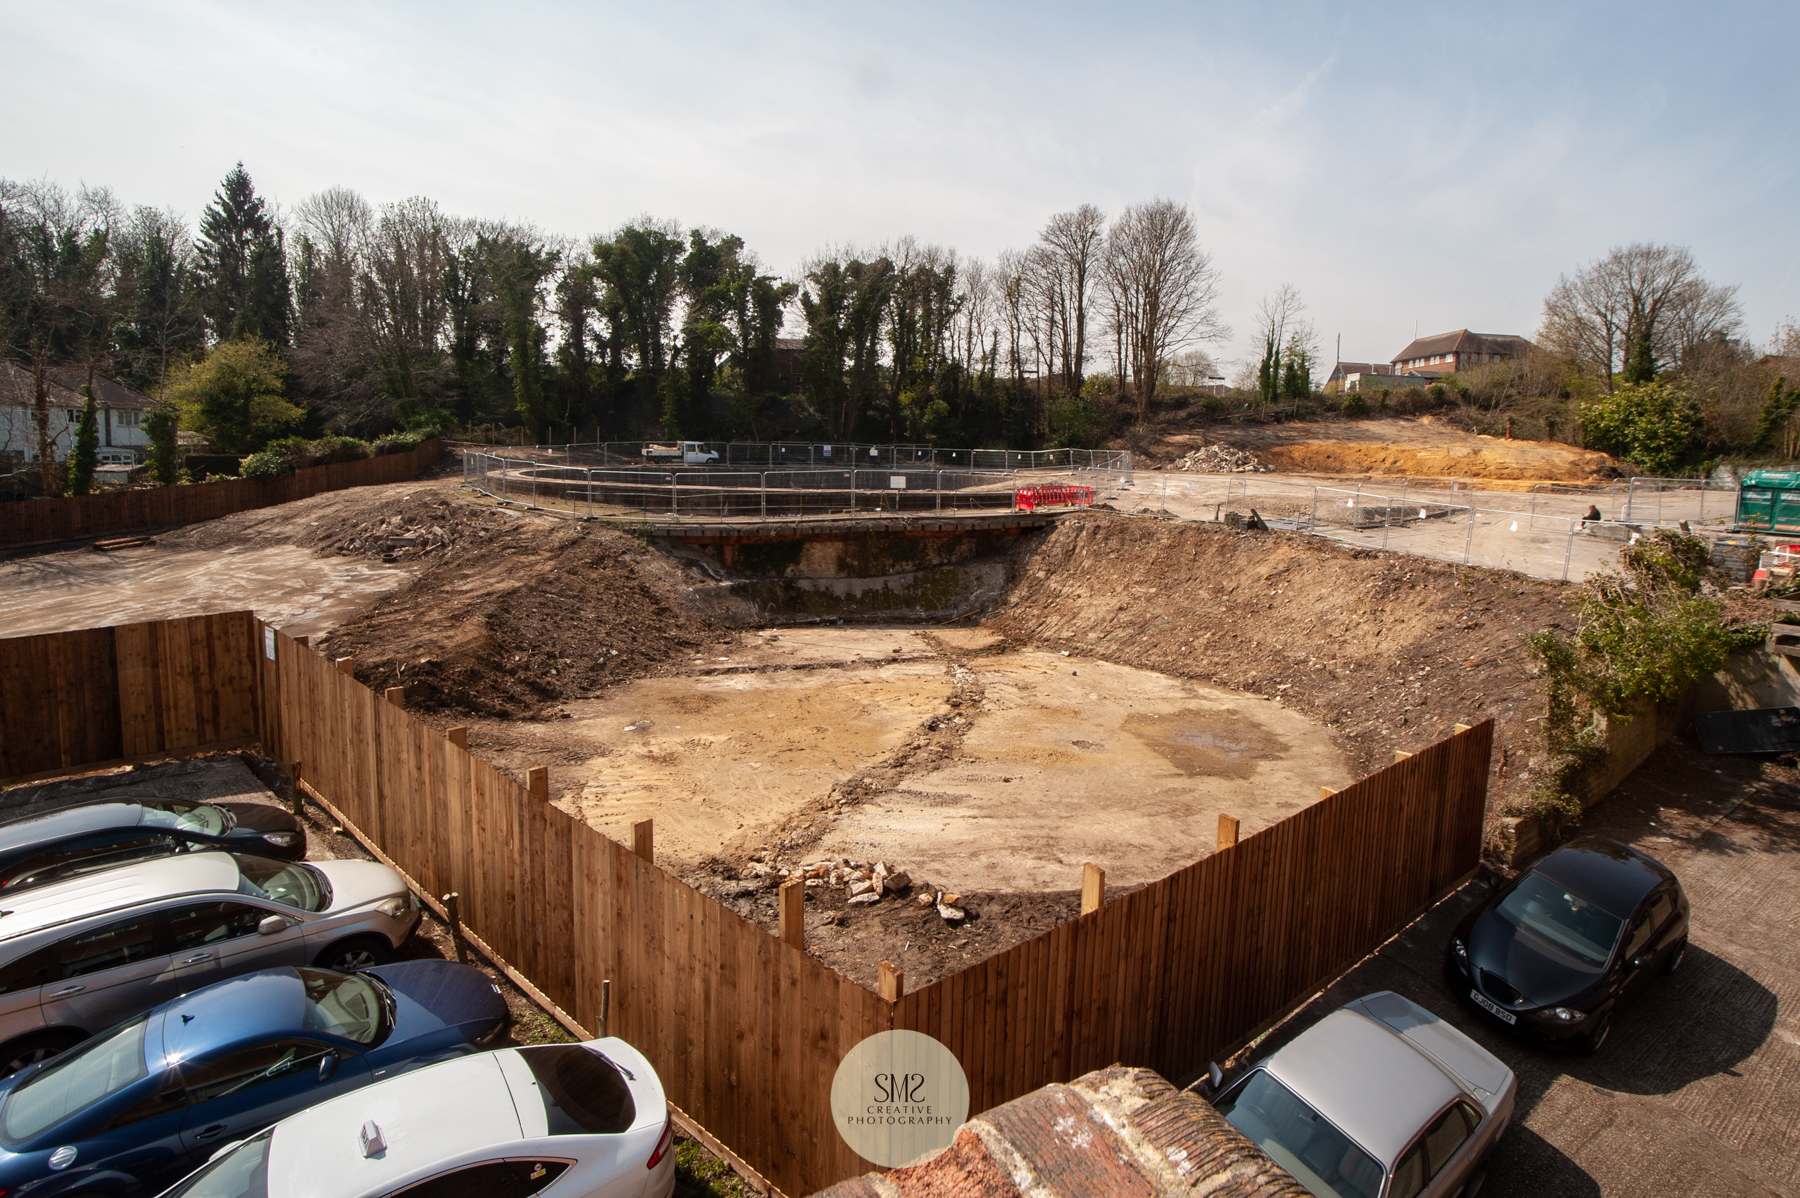 The demolition of the gasholder and clearing of the site is complete ready for the building process to commence, this photograph is how the site looked on 15 April 2019.